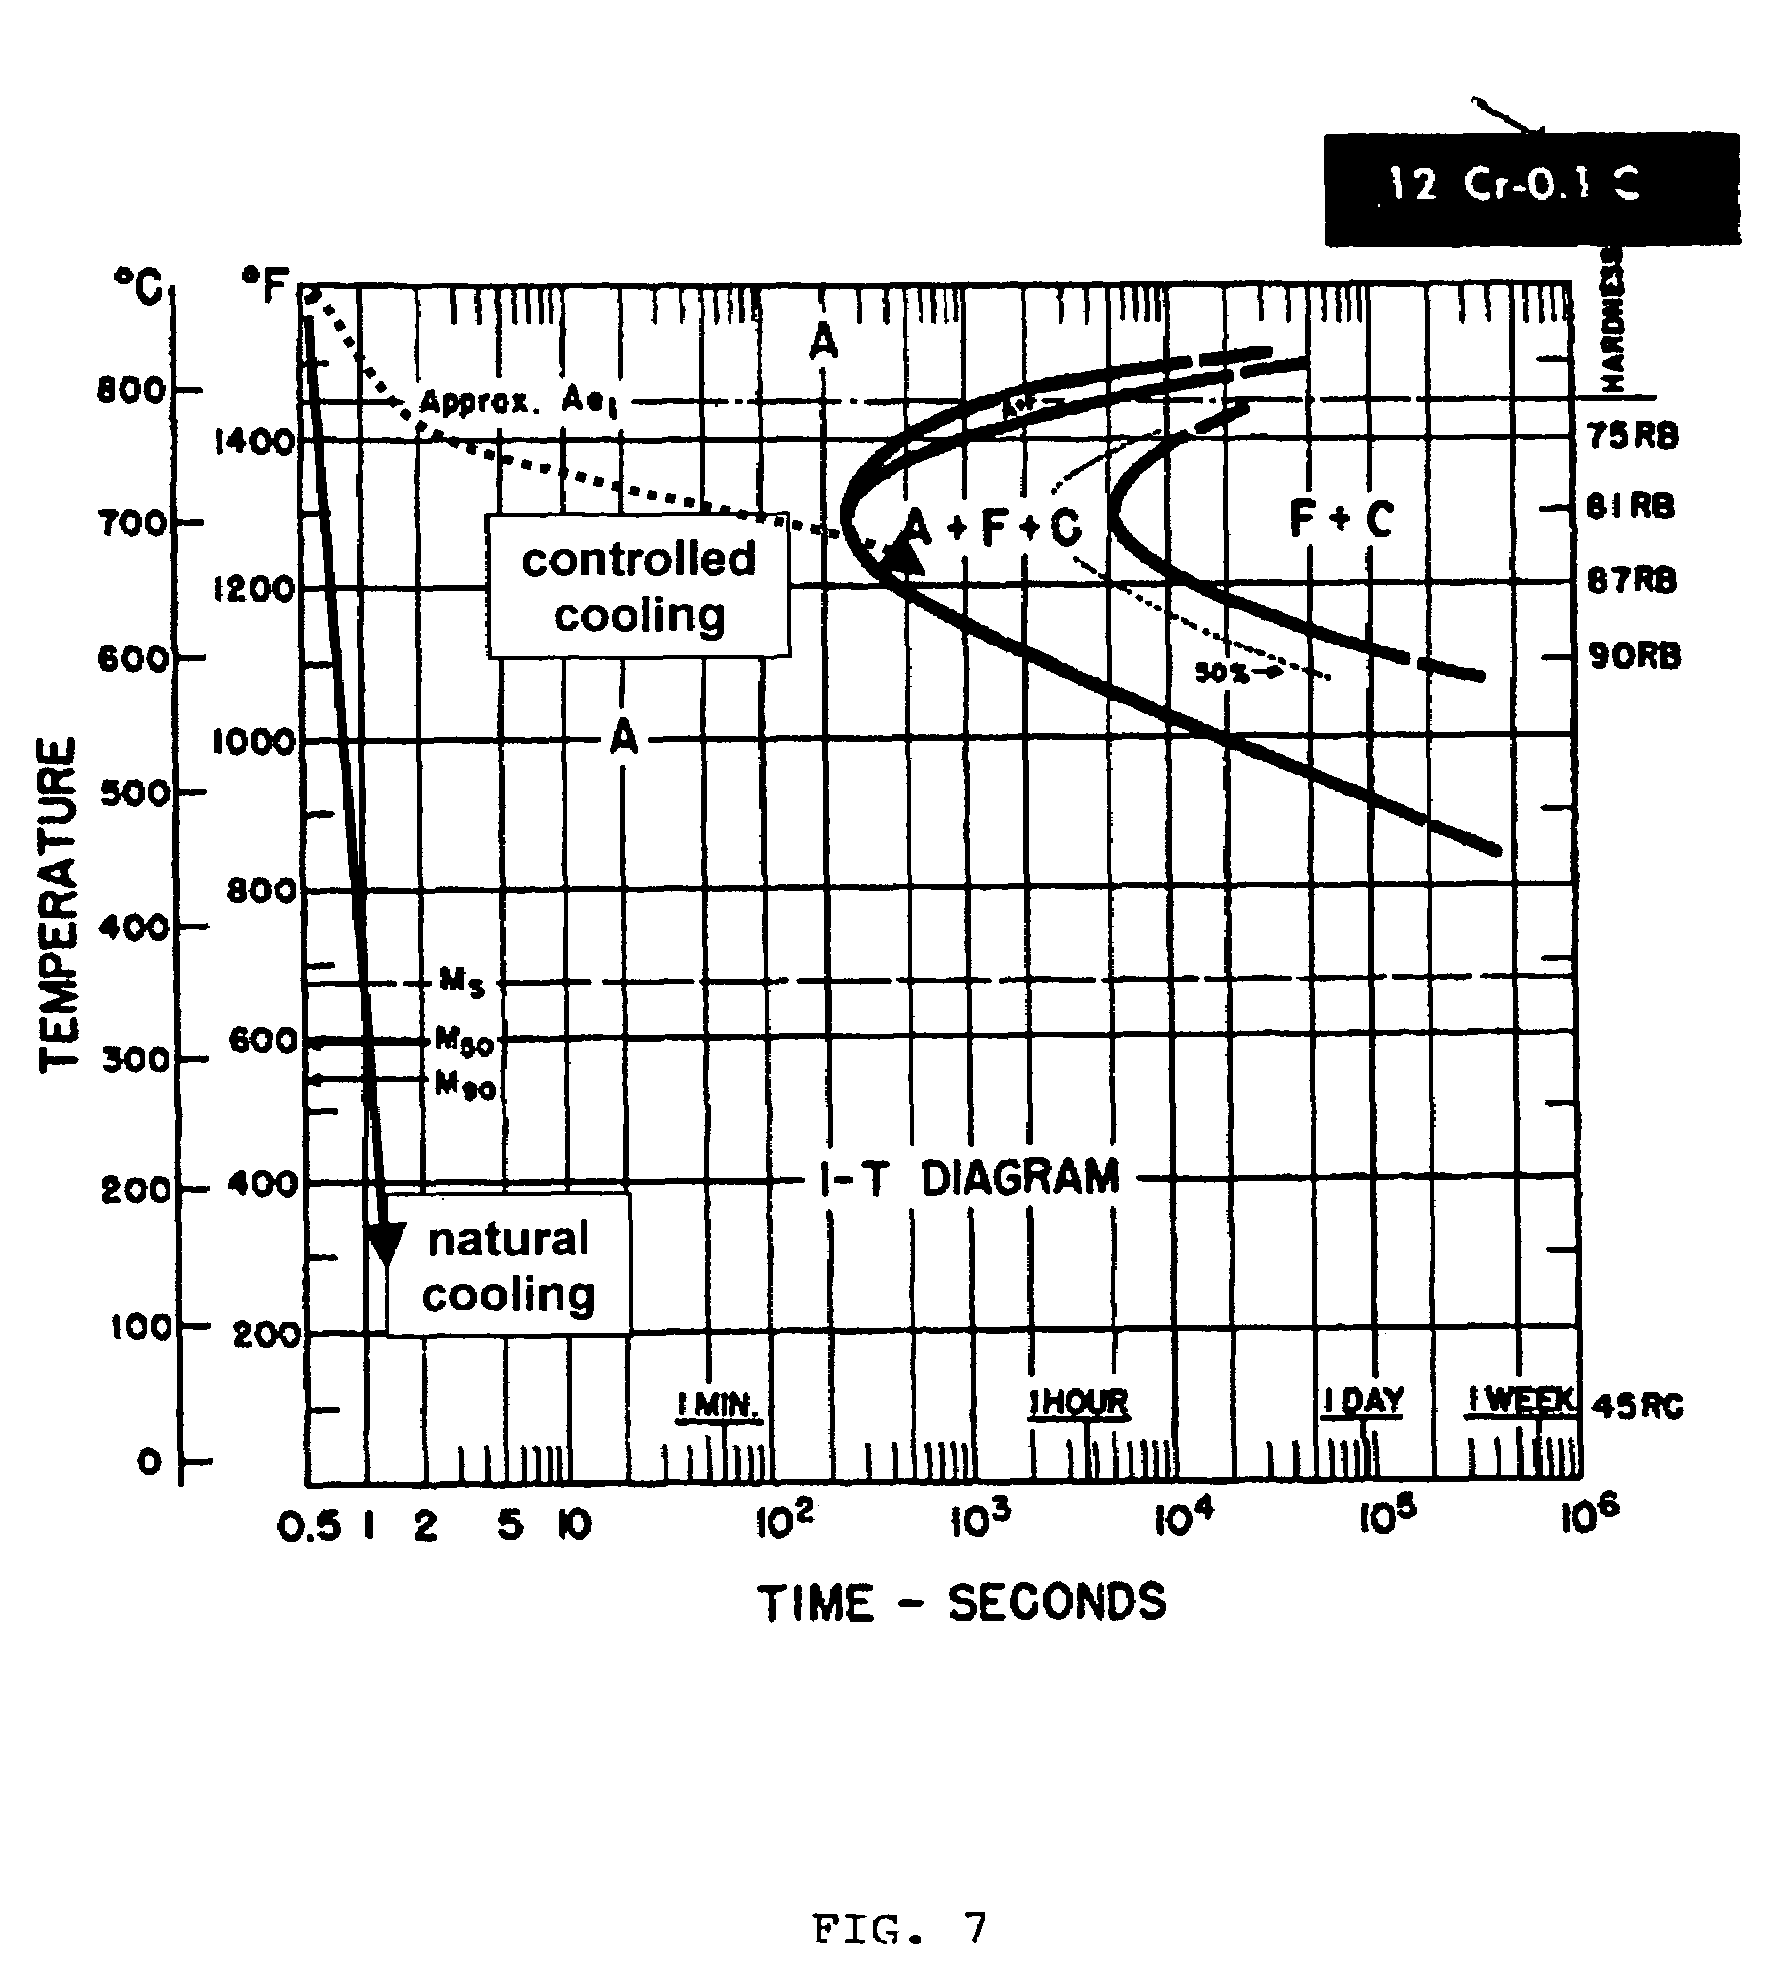 Welding Phase Diagram Auto Electrical Wiring Lincoln Impinger 1116 Patent Us7540402 Mig Welder